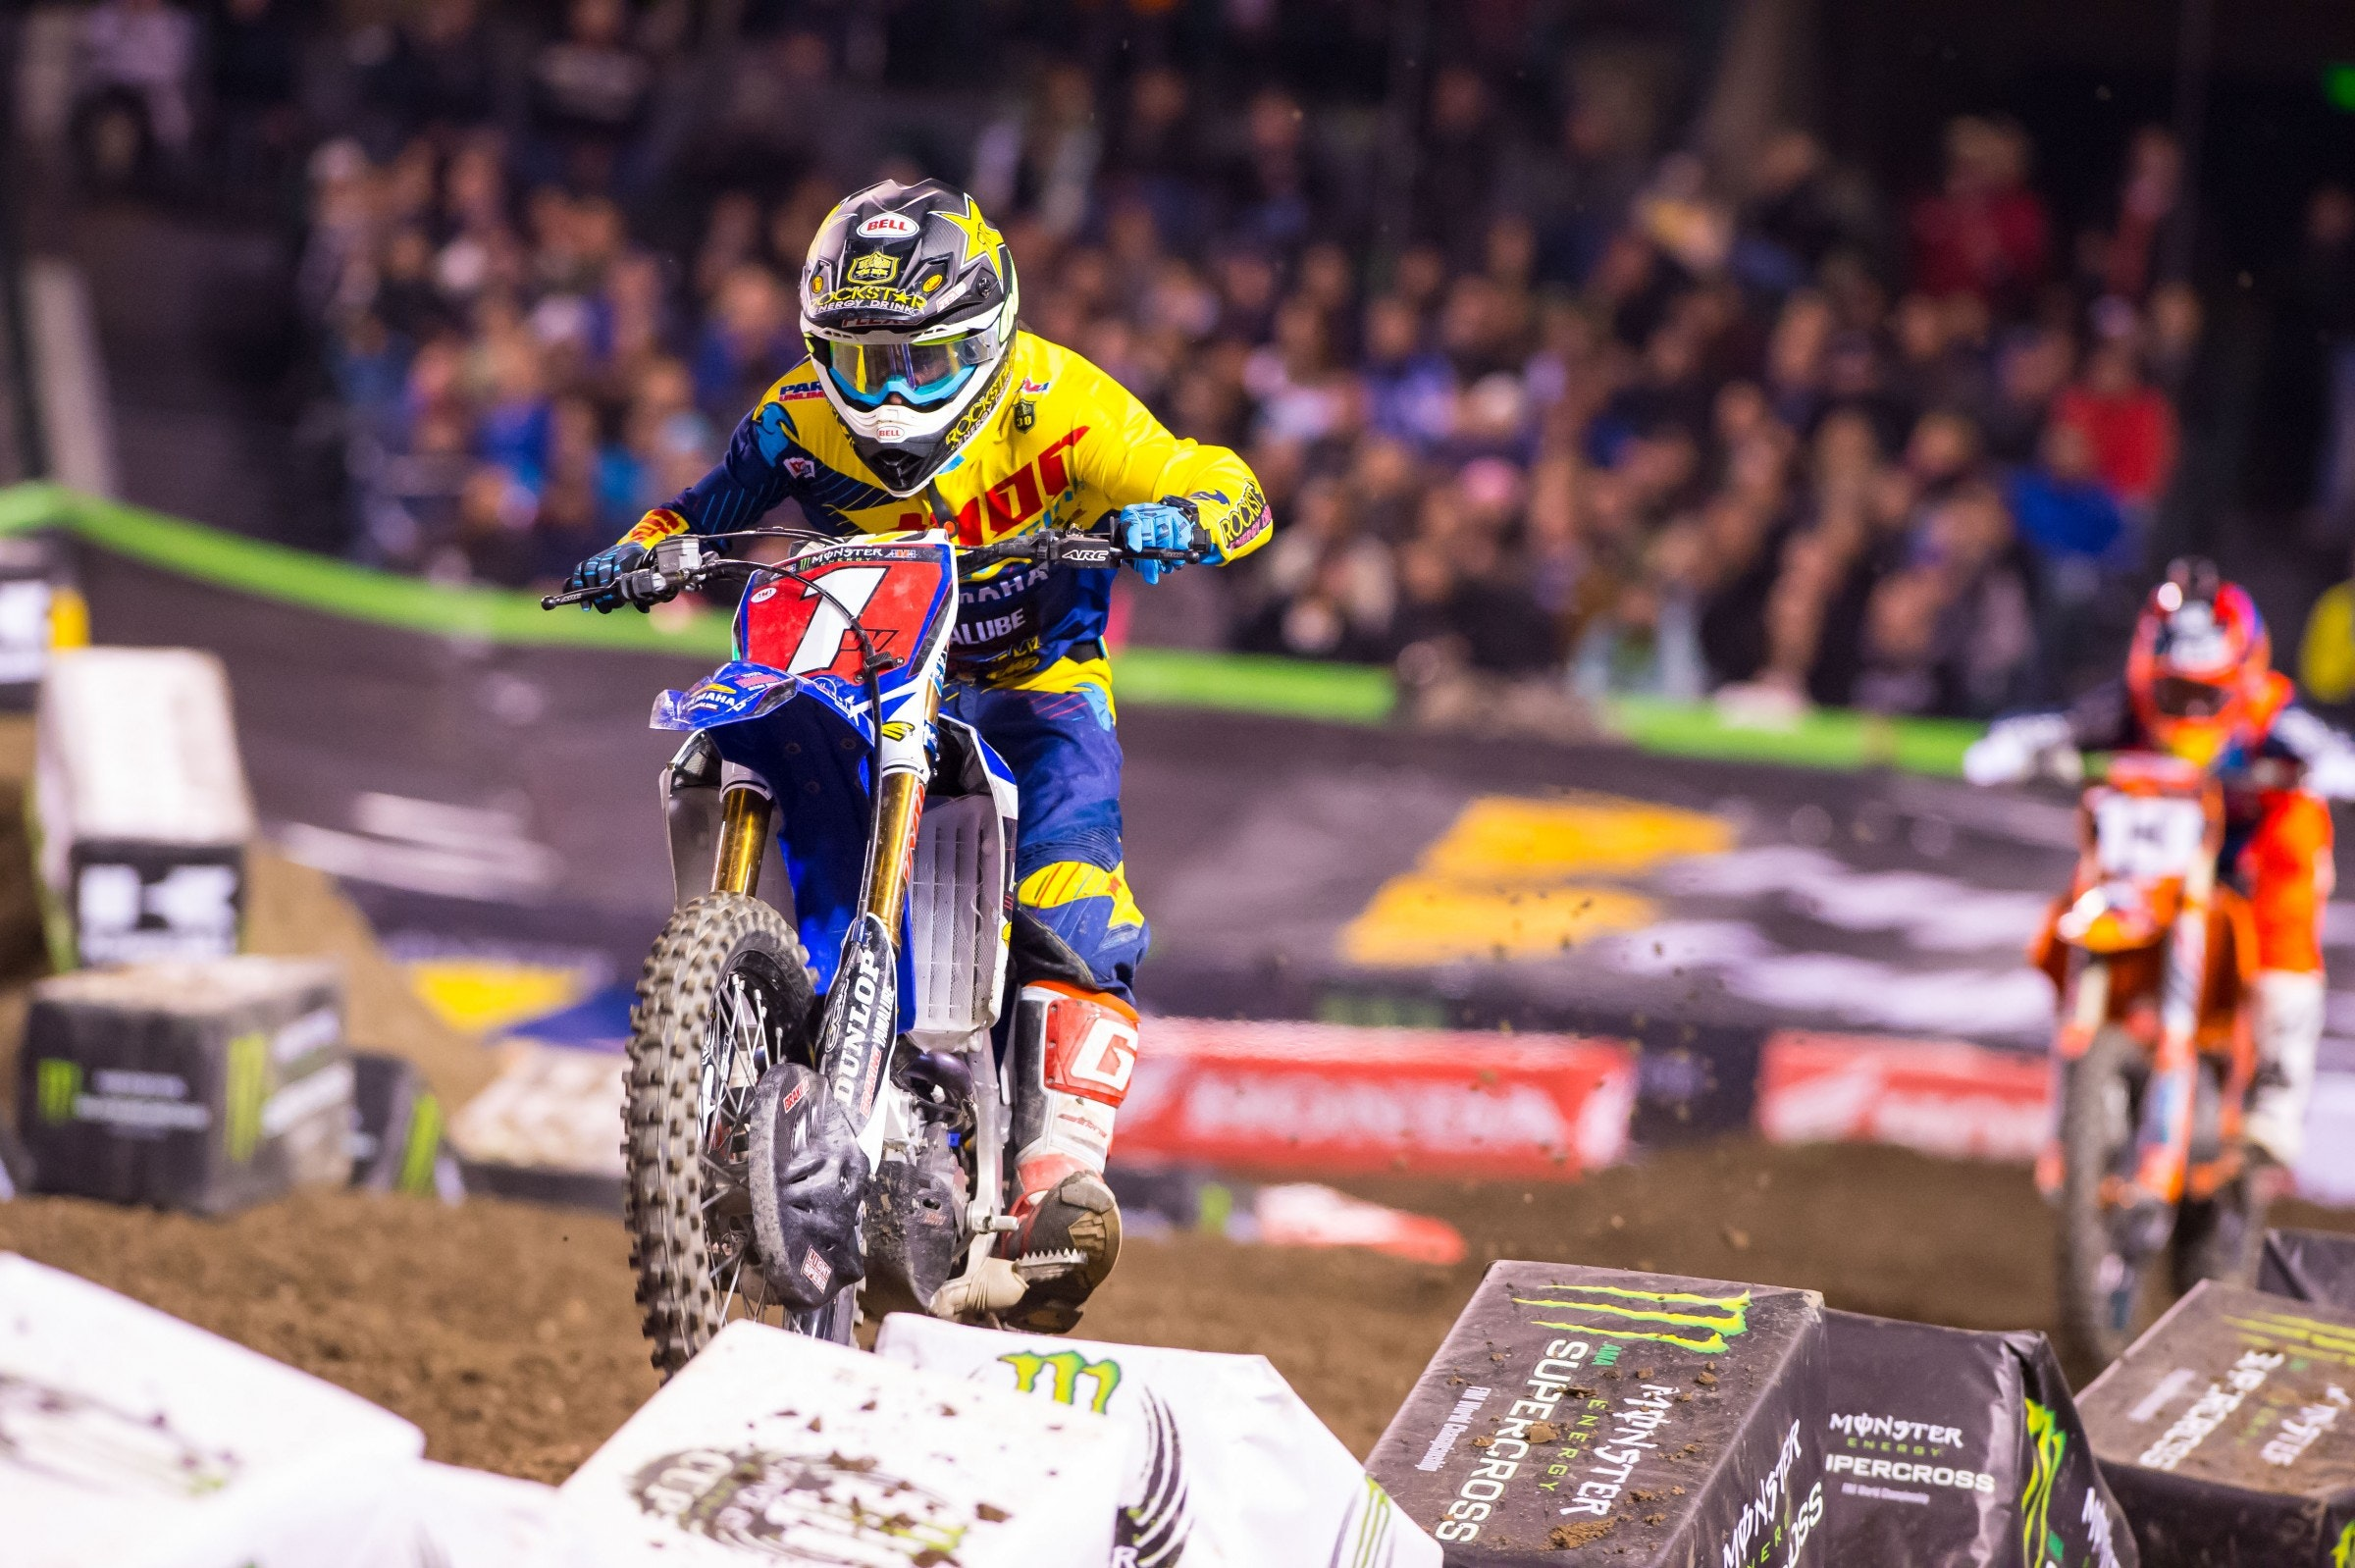 Webb takes the 250SX West Region red plate into Santa Clara.